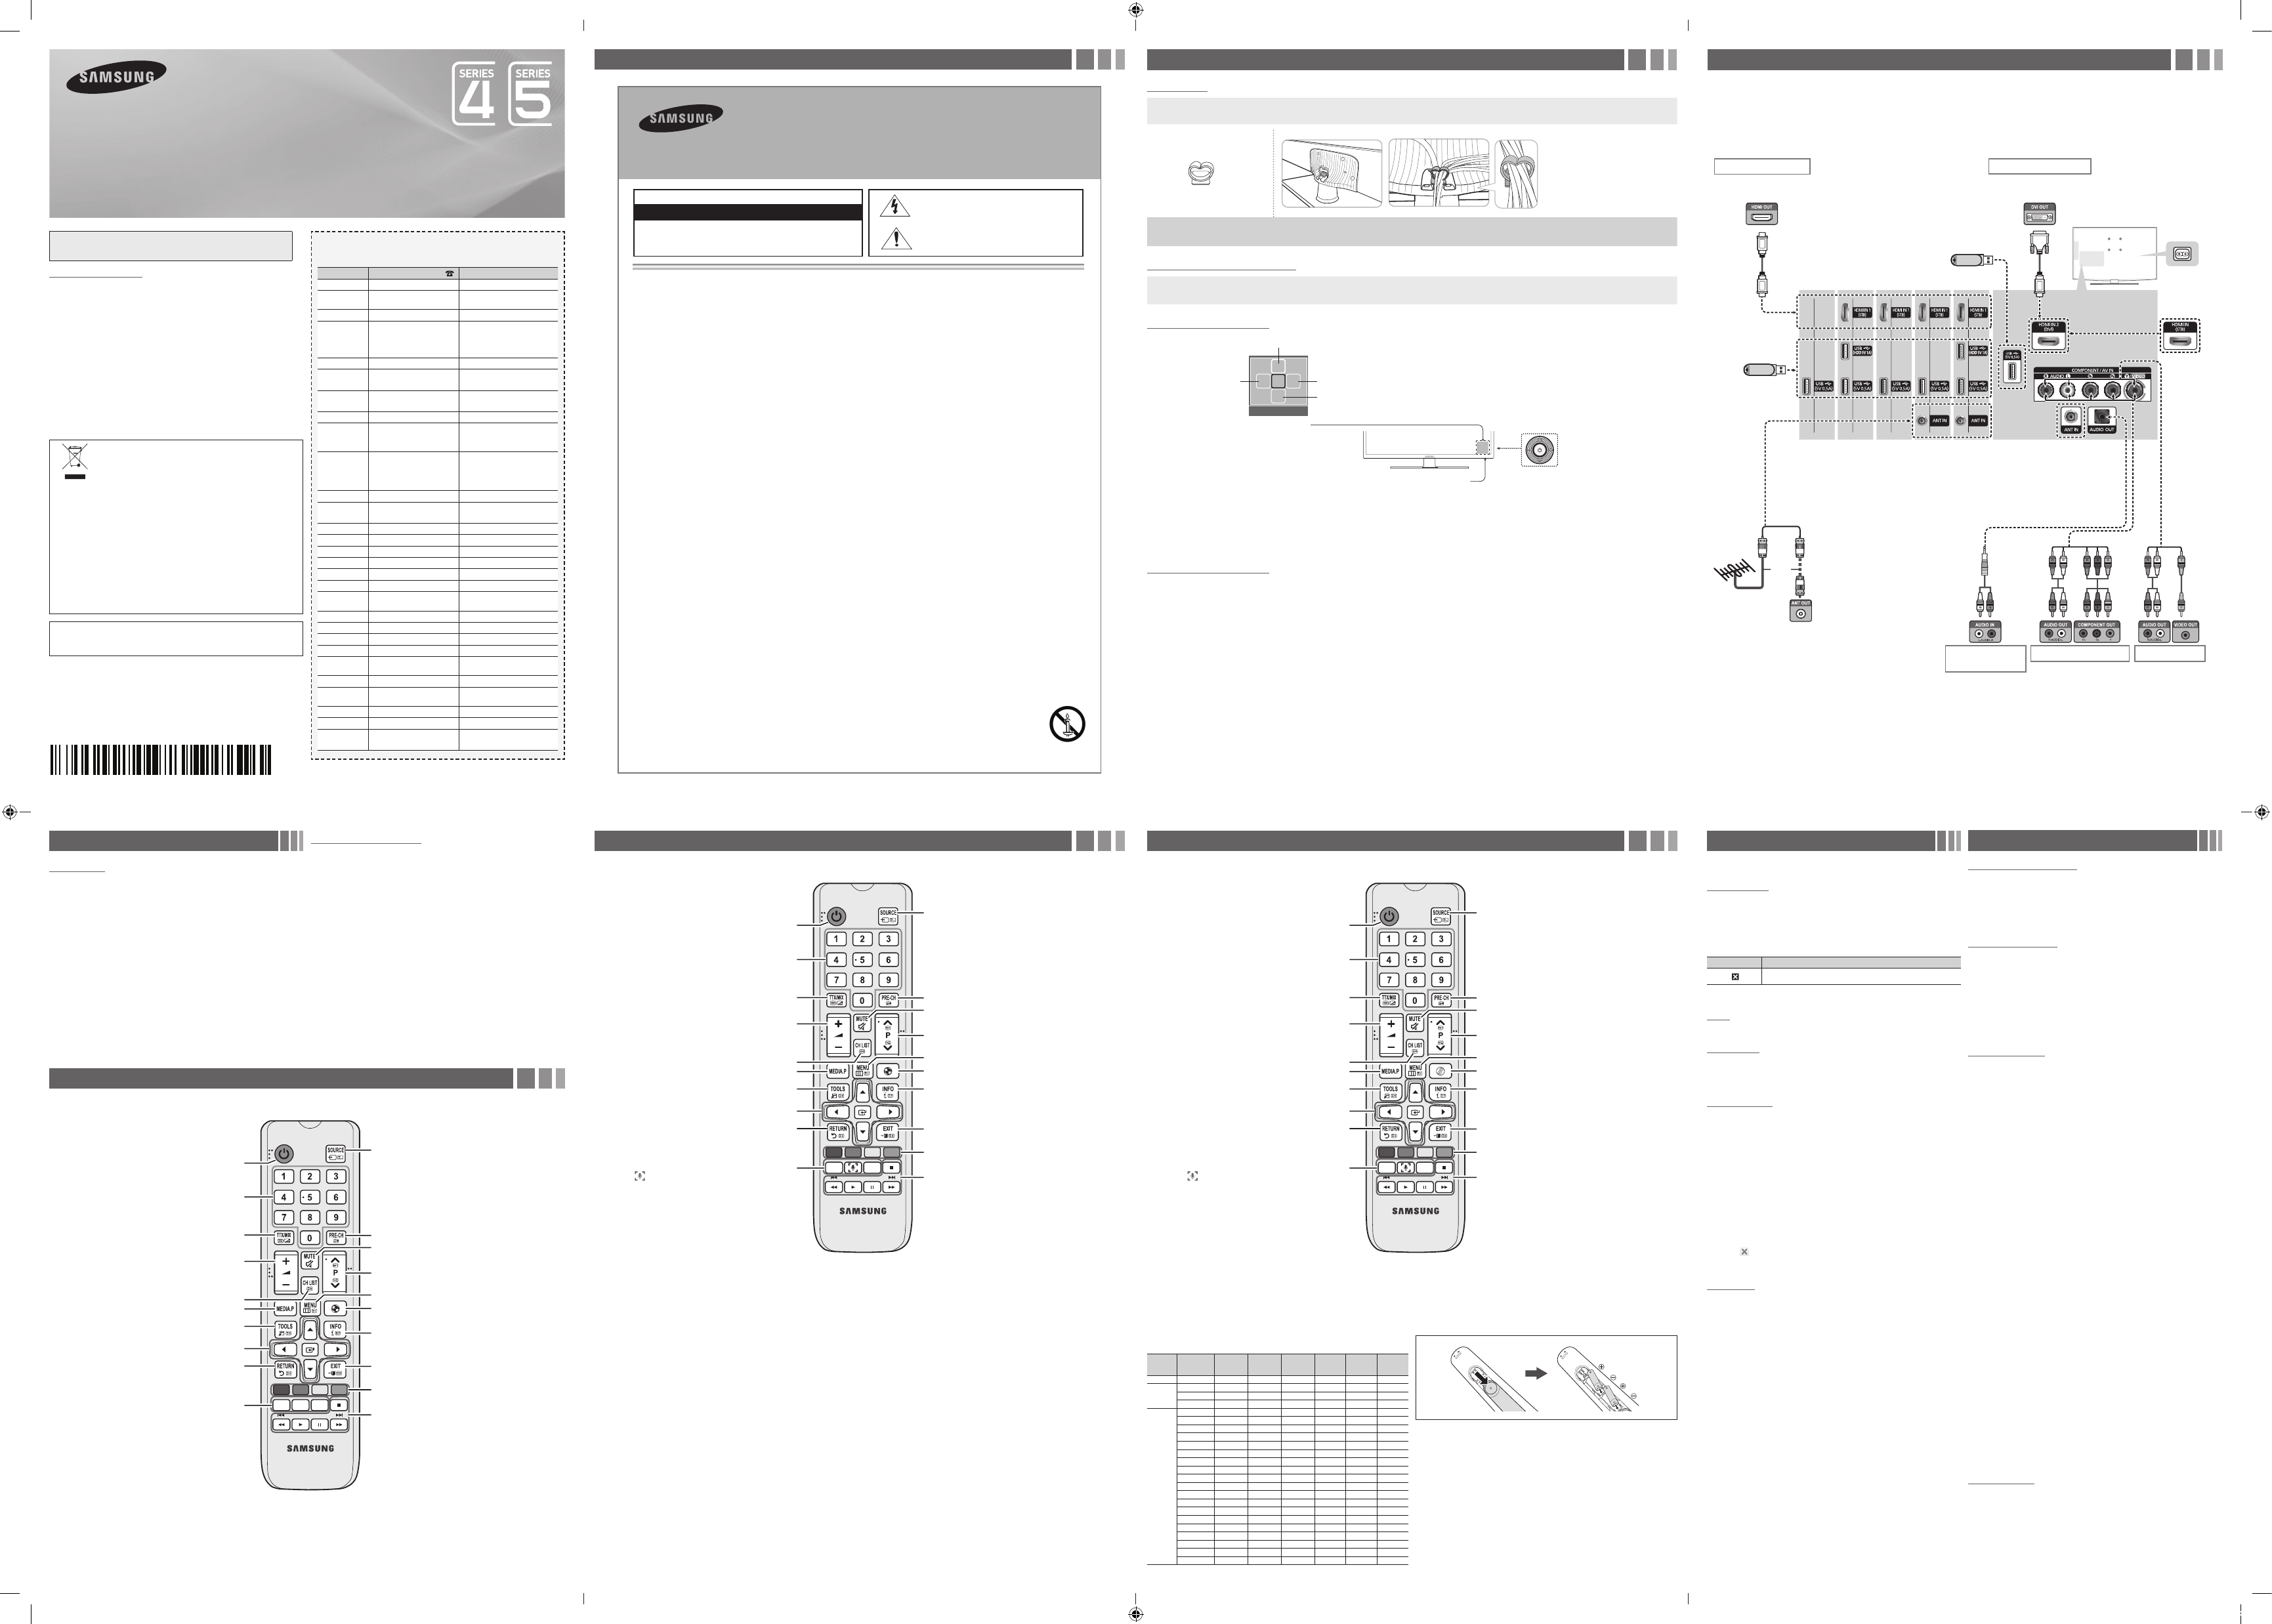 Figures and illustrations in this User Manual are provided for reference  only and